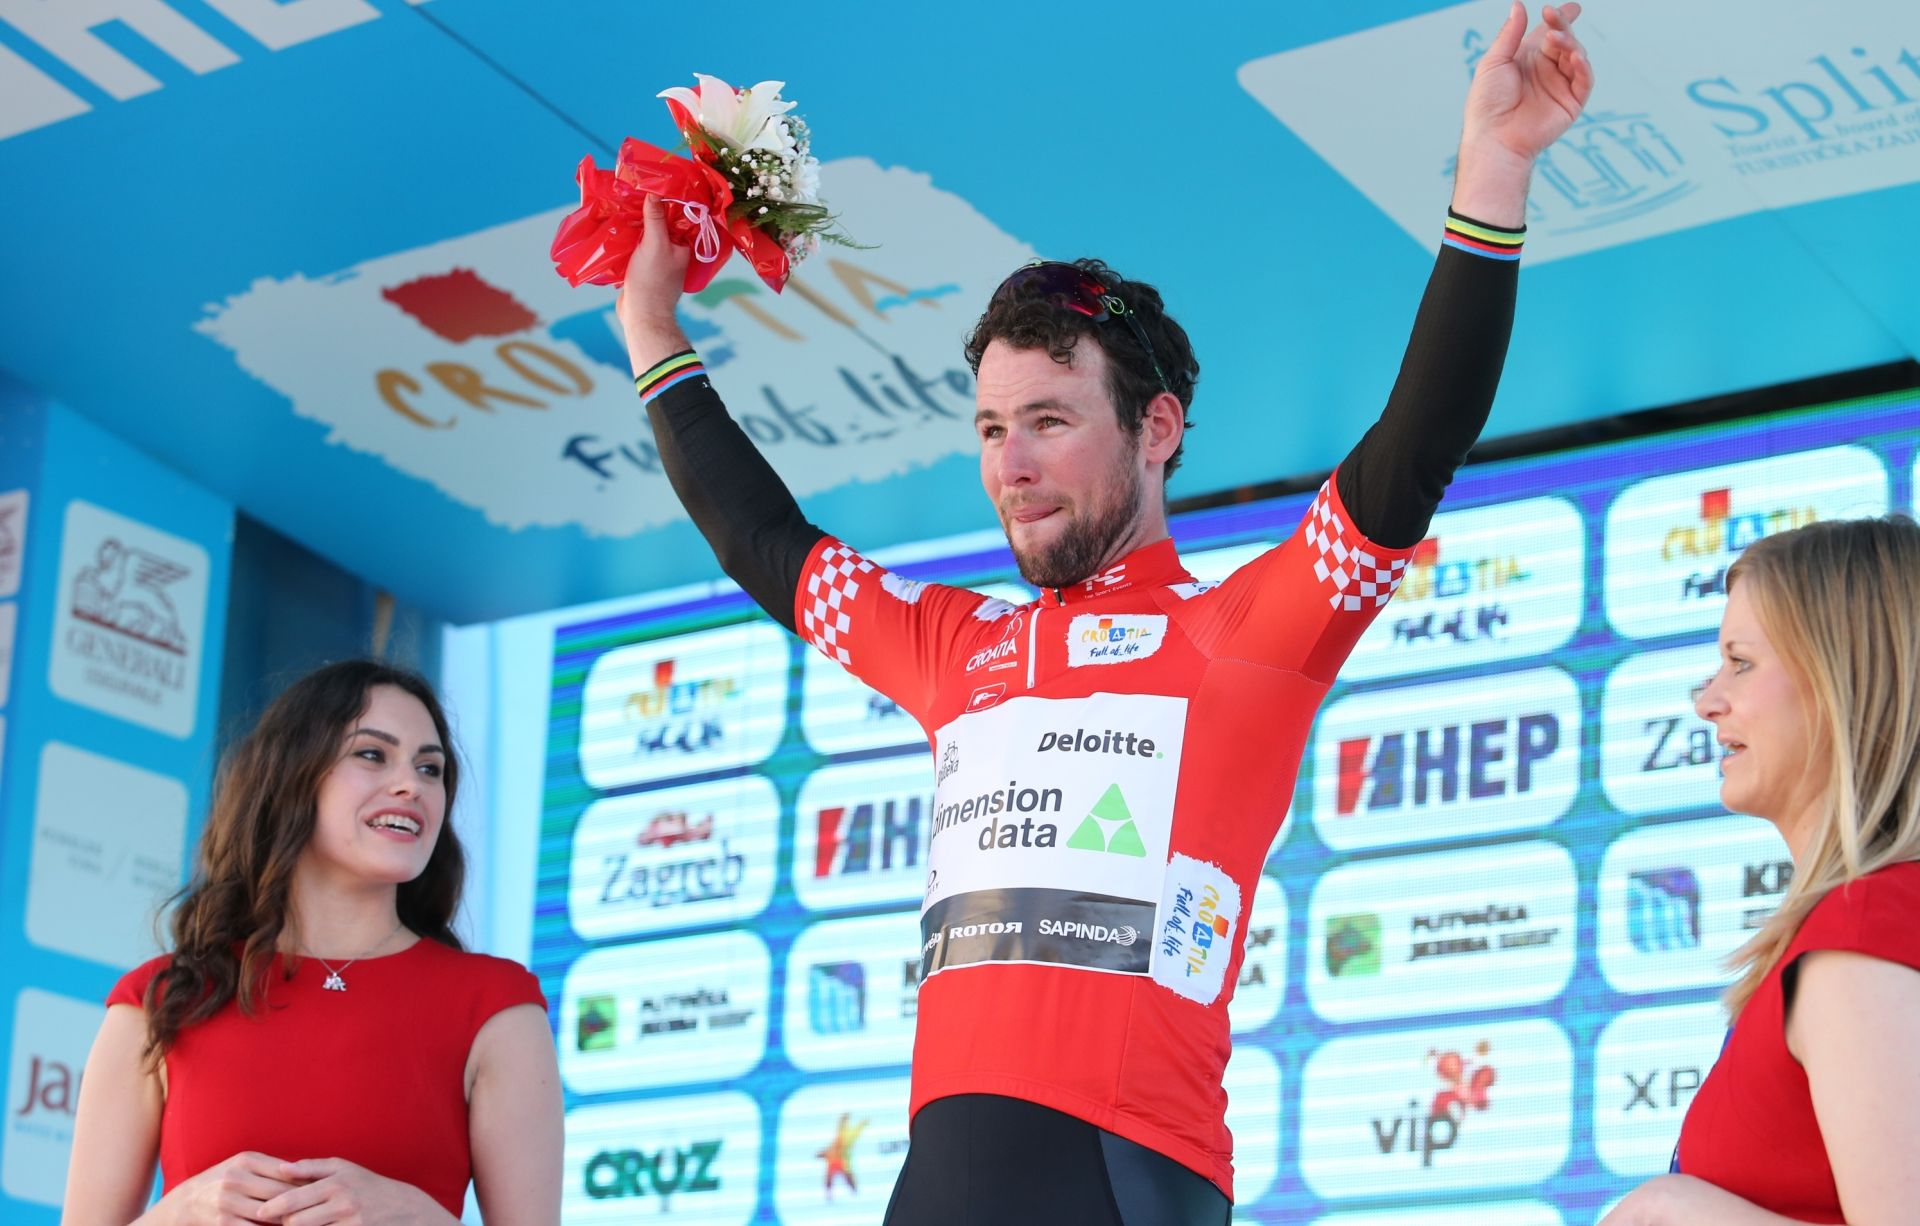 Tour of Croatia: Cavendish uzvratio Nizzolu